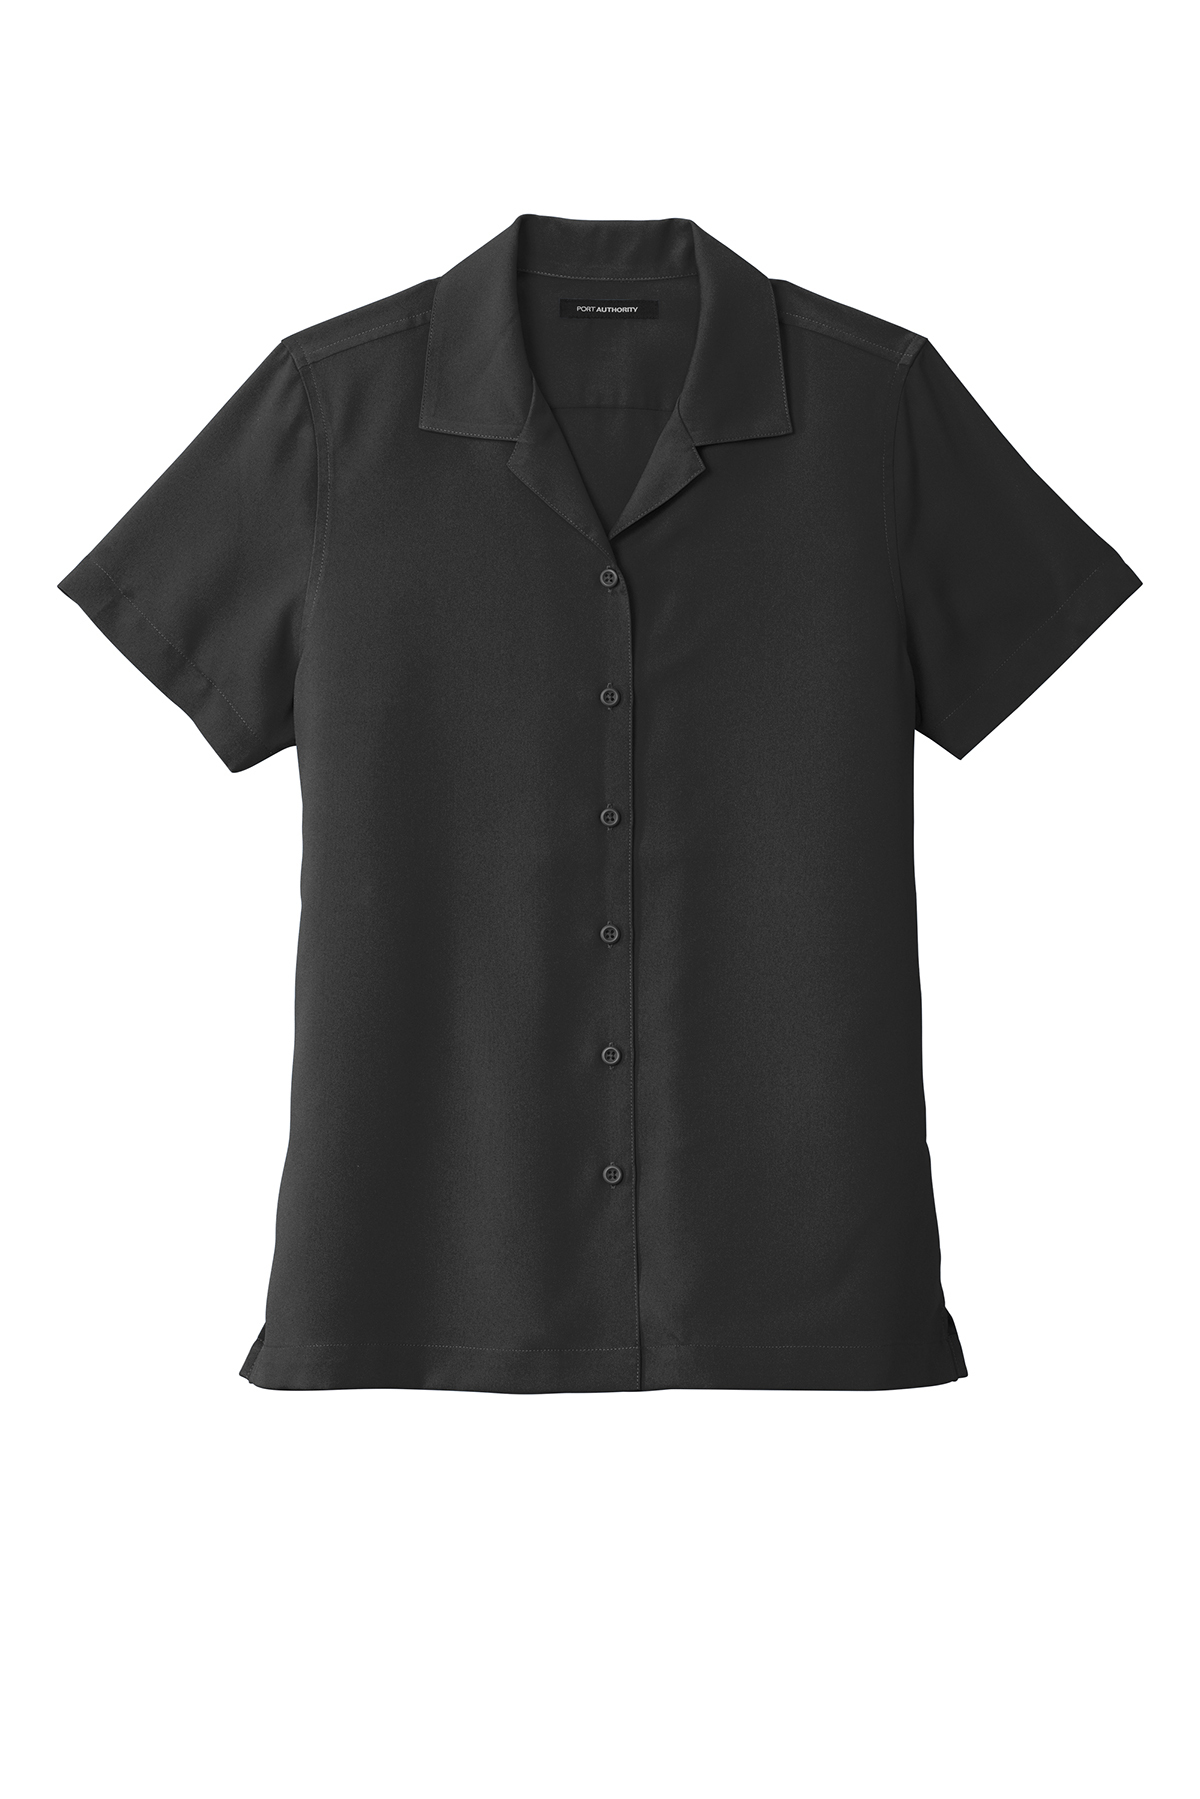 Port Authority LW400 - Ladies Short Sleeve Performance ...